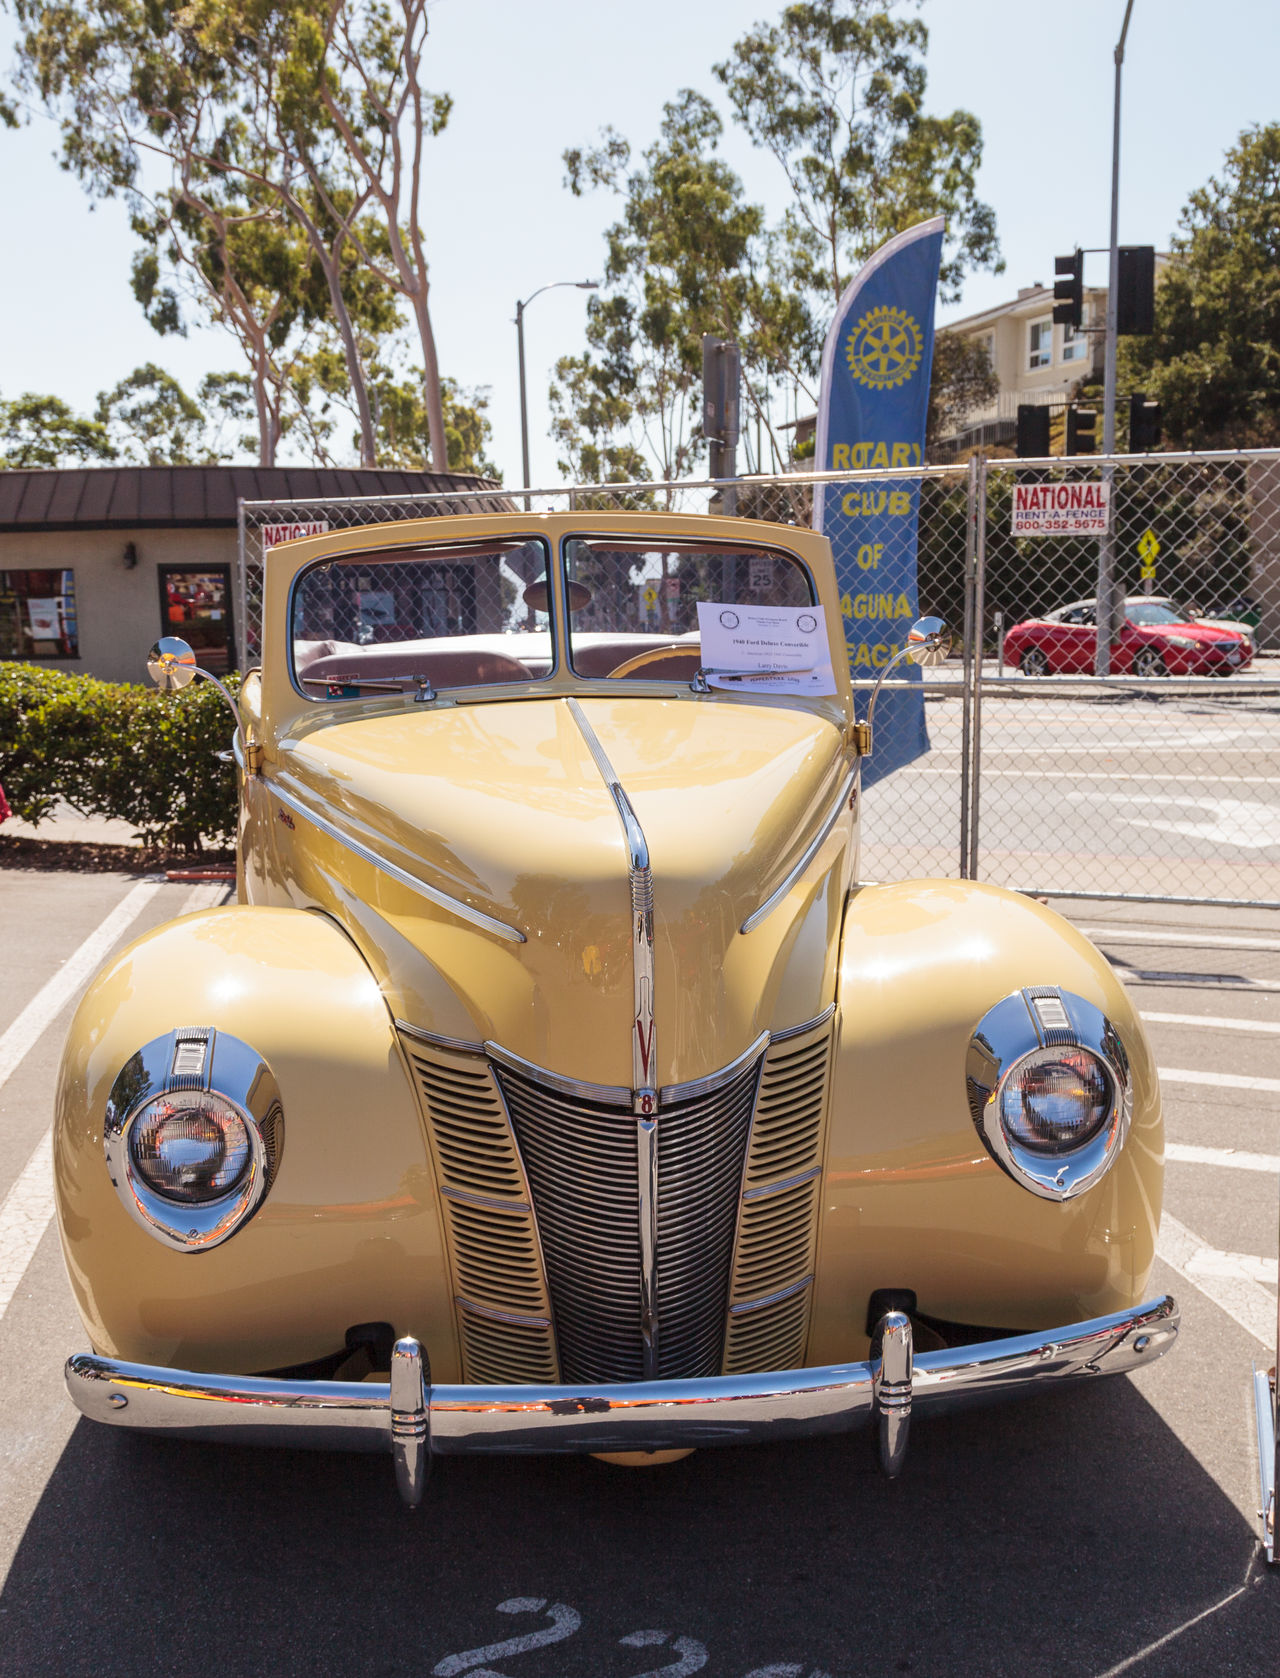 Laguna Beach, CA, USA - October 2, 2016: Yellow 1940 Ford Deluxe Convertible owned by Larry Davis and displayed at the Rotary Club of Laguna Beach 2016 Classic Car Show. Editorial use. 1940 Car Show Classic Car Classic Car Show Convertible Day Deluxe Ford Laguna Beach, CA No People Old Car Outdoors Vintage Car